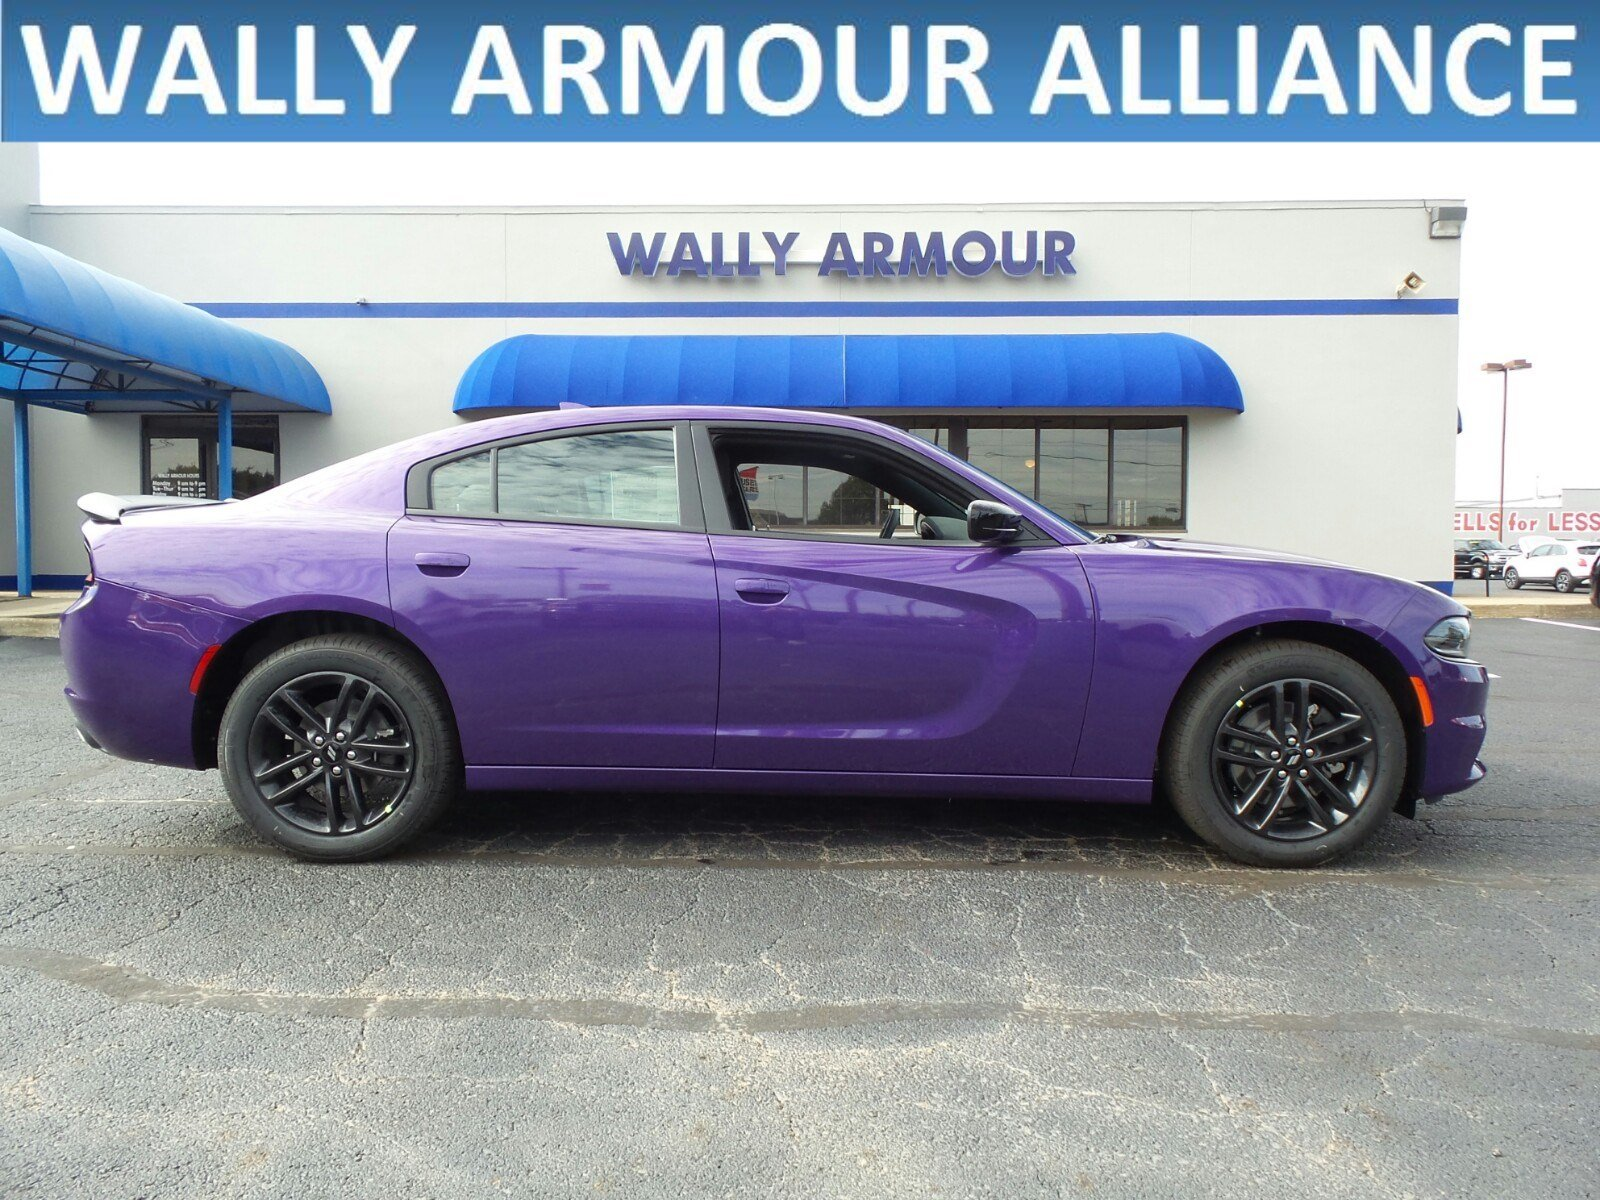 New 2019 Dodge Charger Sxt Sedan In Alliance Dd0004 Wally Armour